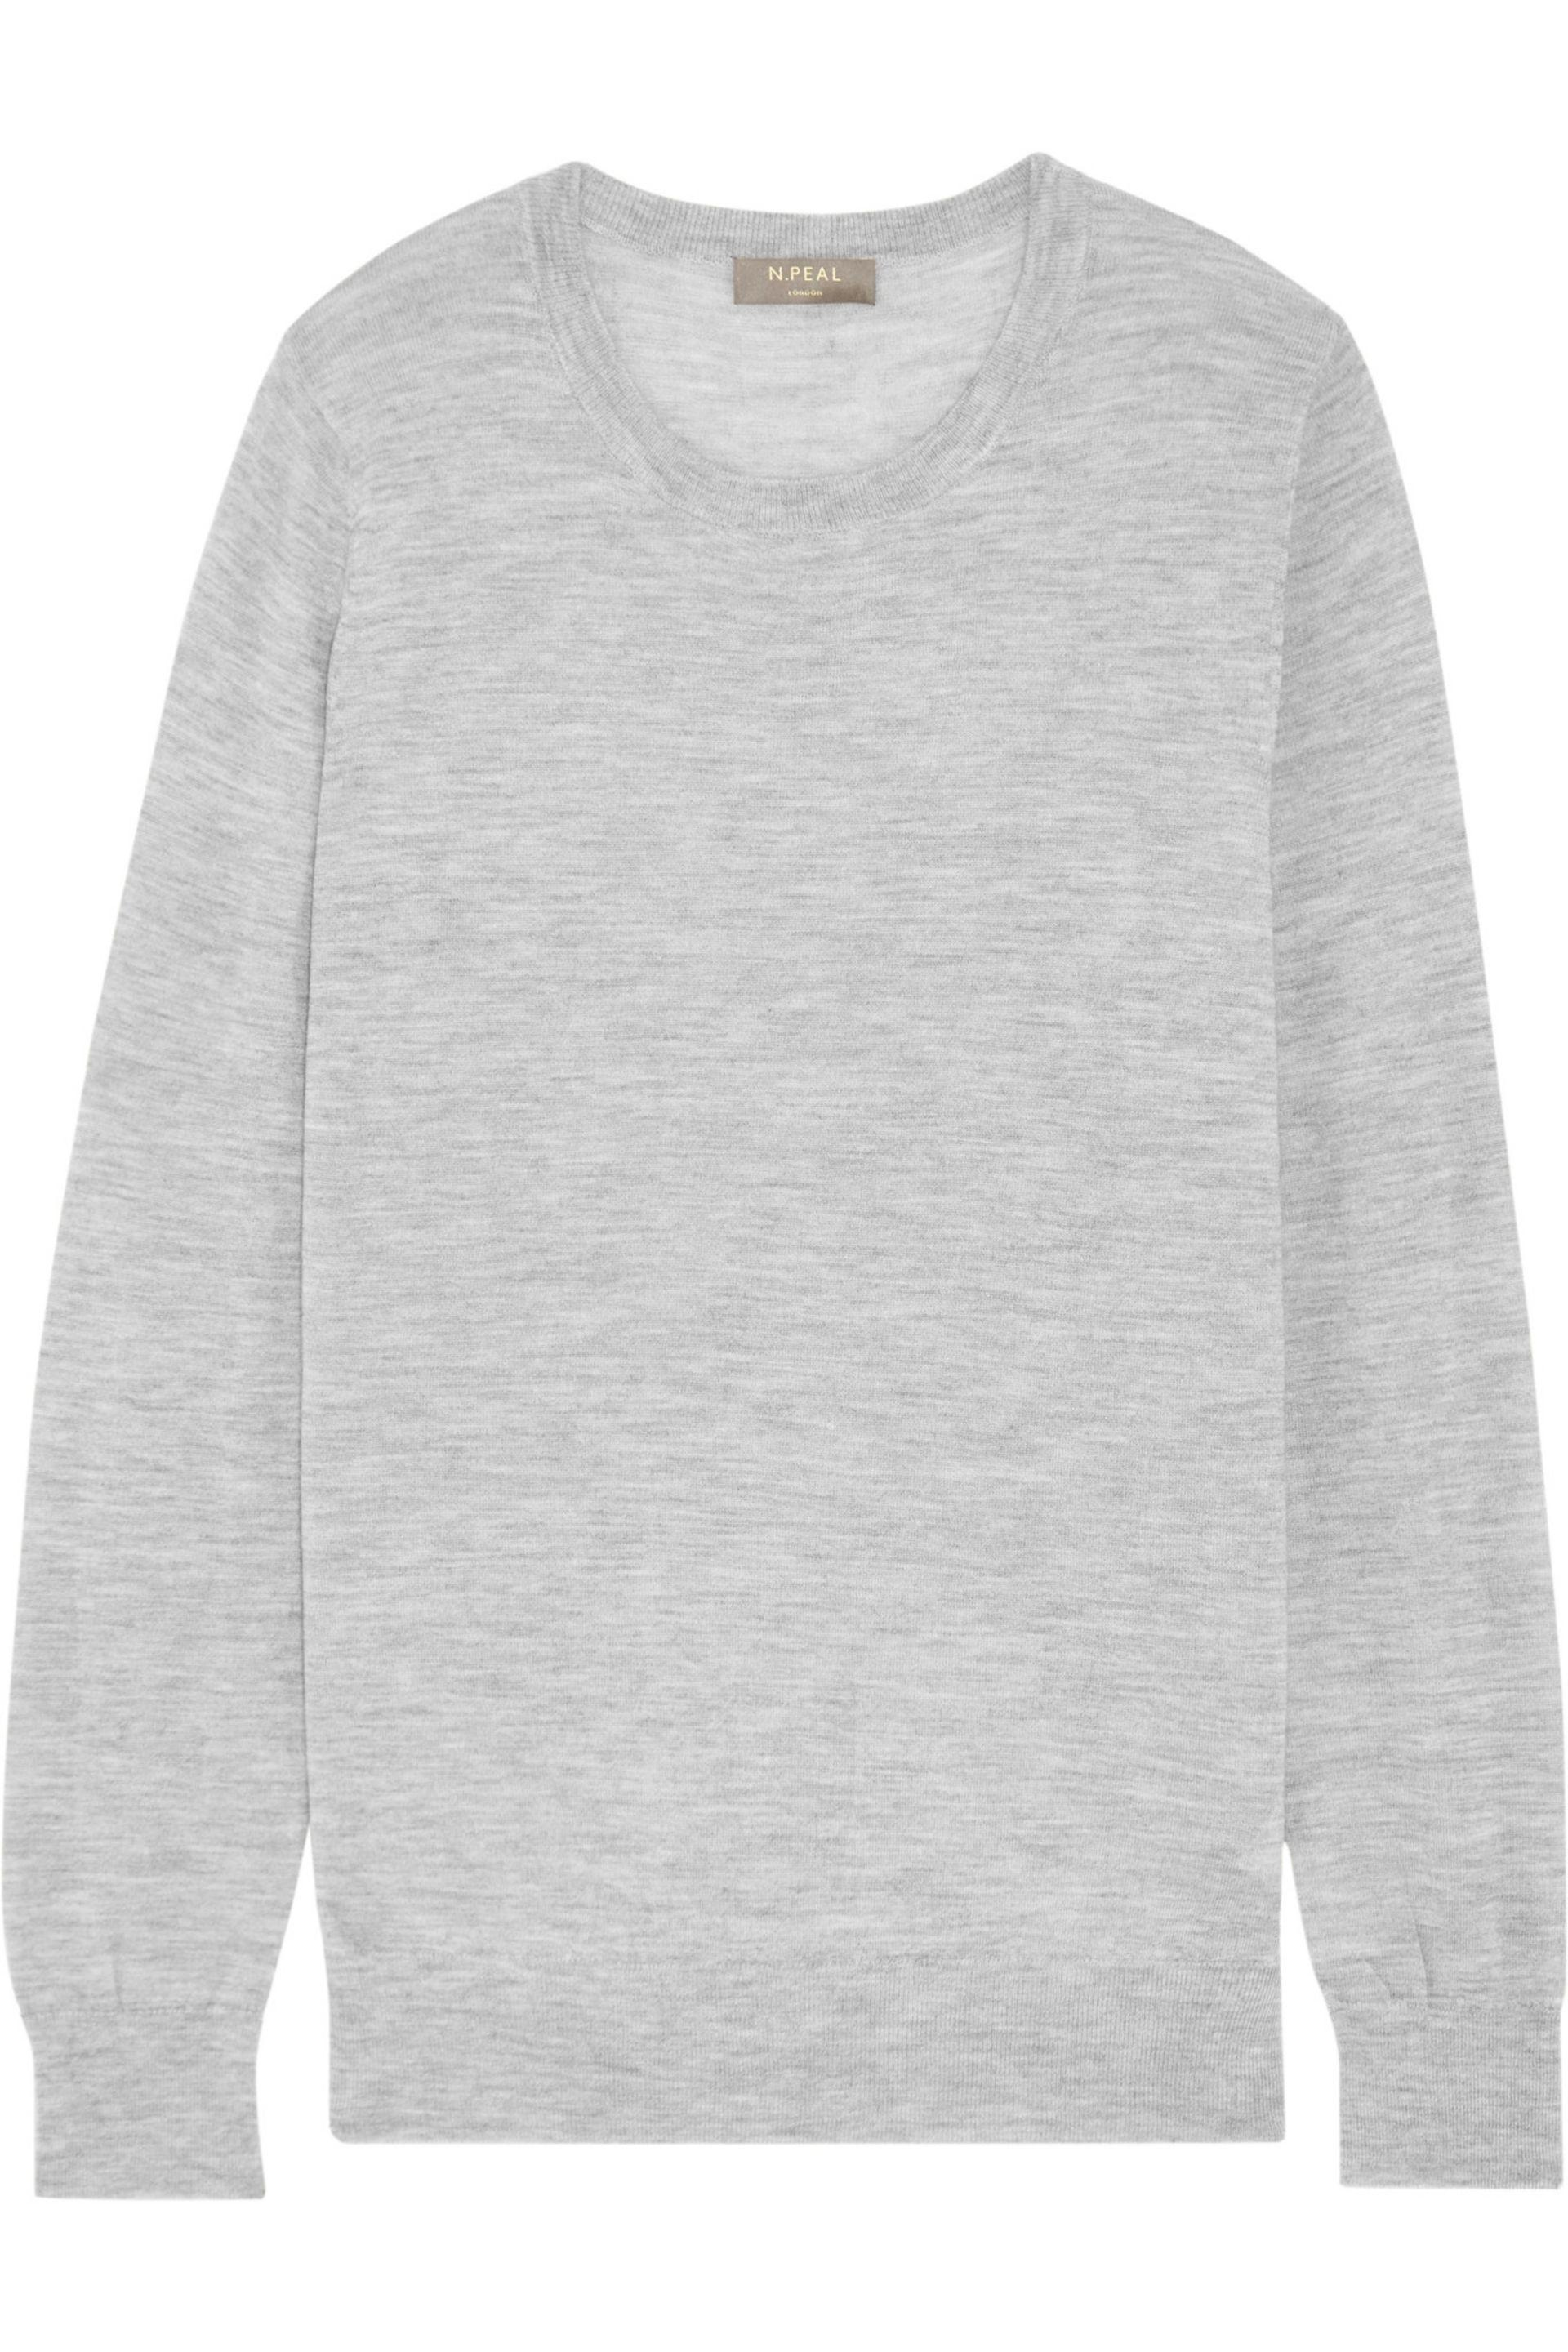 N.peal cashmere Cashmere Sweater Light Gray in Gray | Lyst